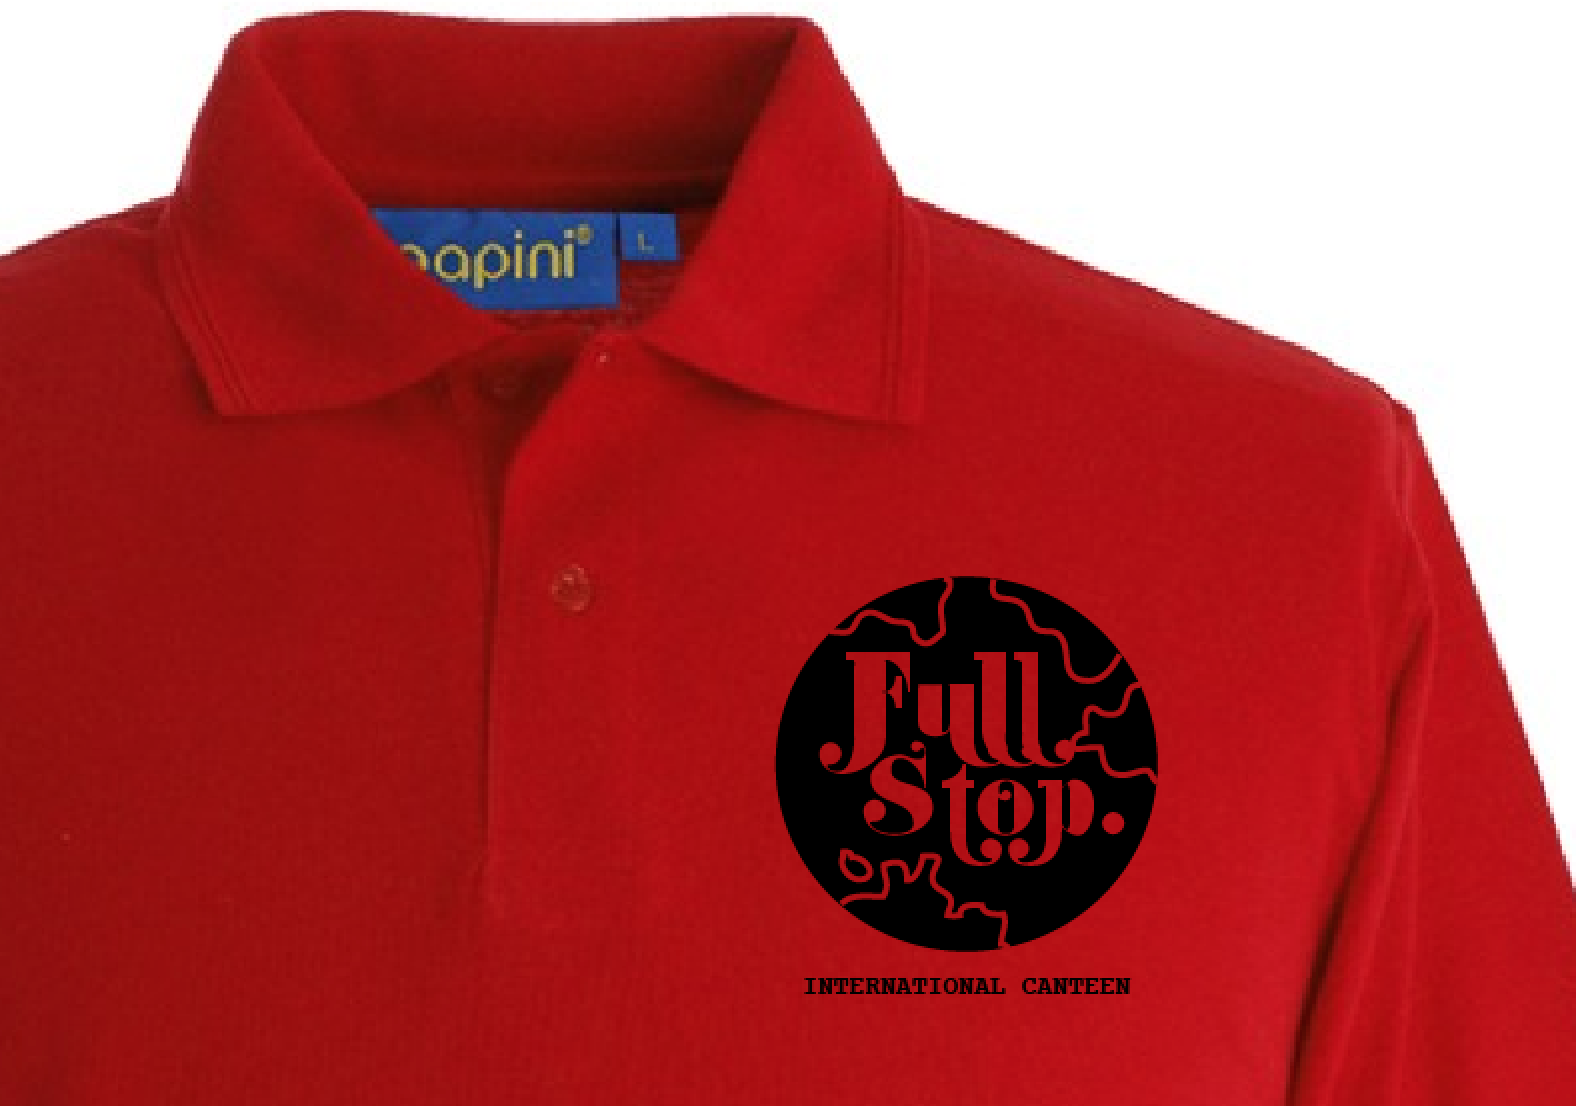 Design practice ougd504 design for print and web studio for Screen printed polo shirts